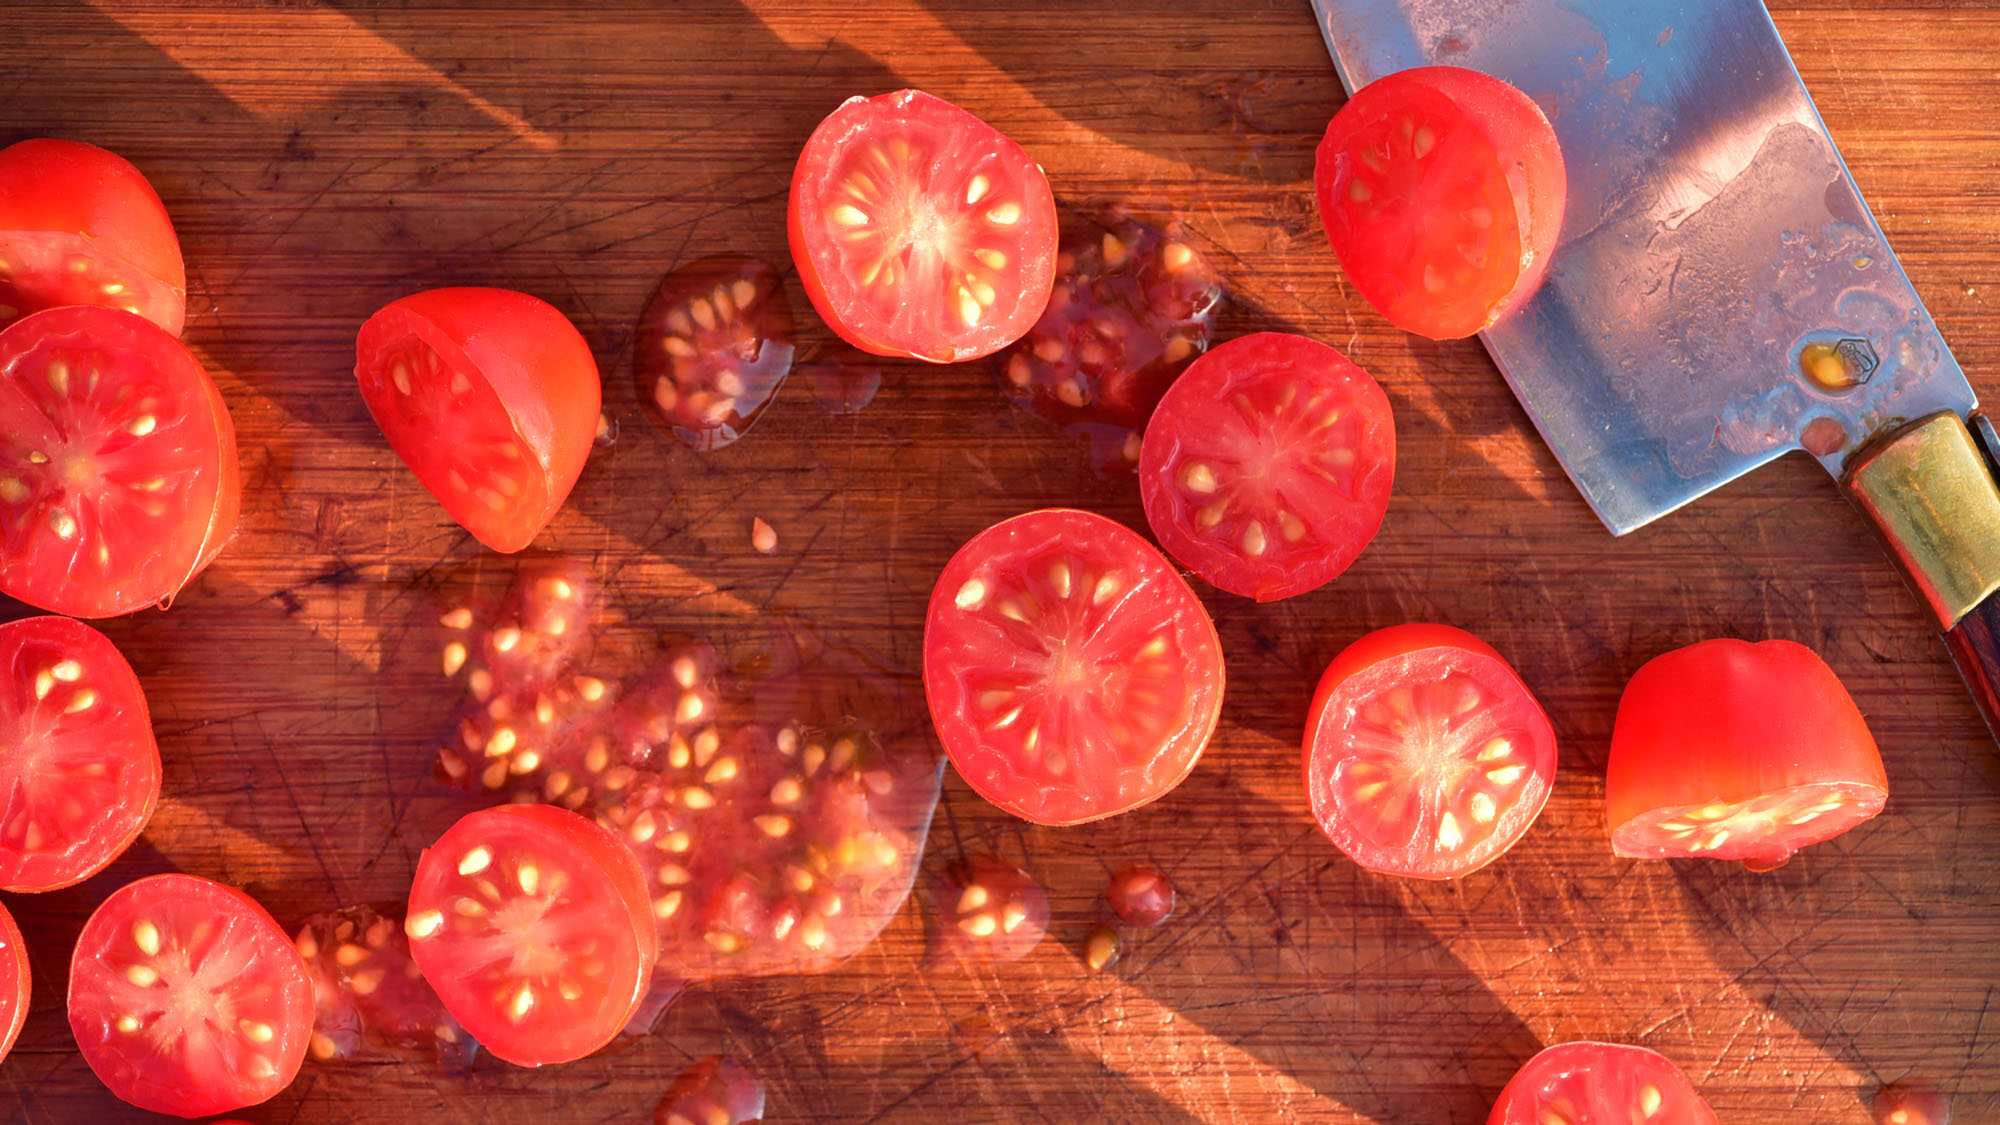 Overhead shot of tomatoes that have been cut in half to show the seeds inside on a cutting board.